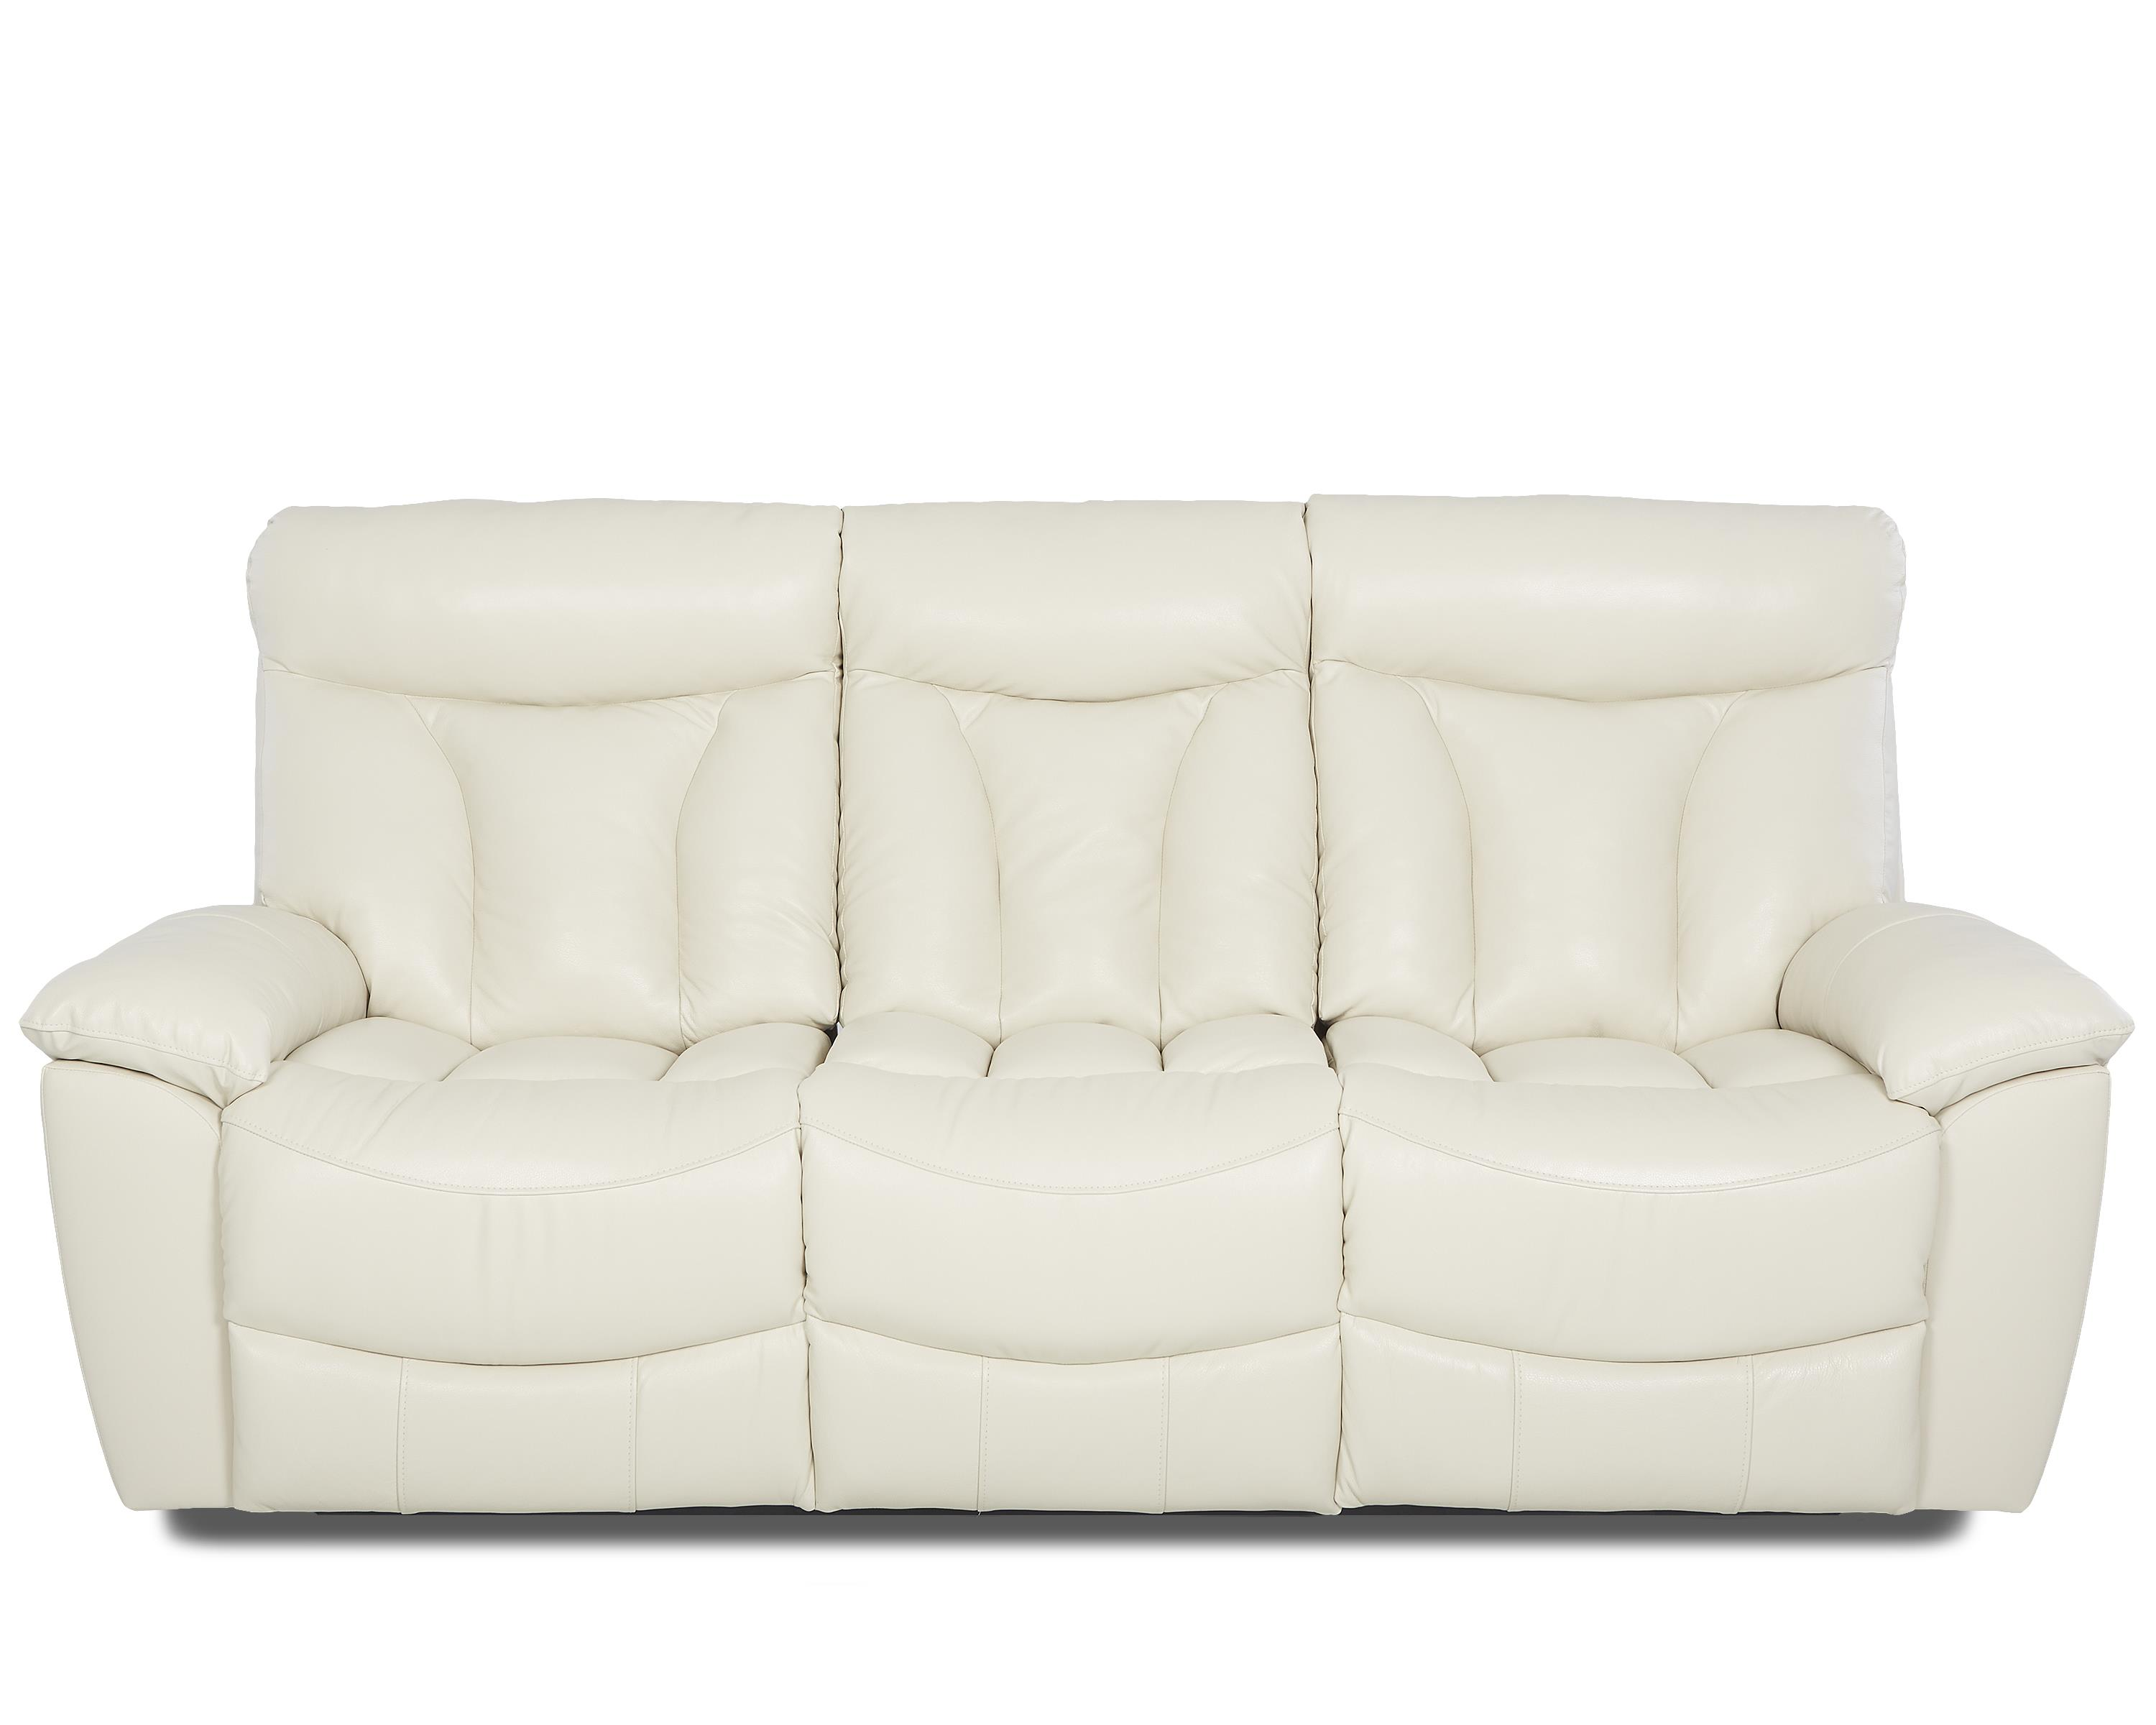 Klaussner Reclining Sofa Best Reclining Sofa For The Money